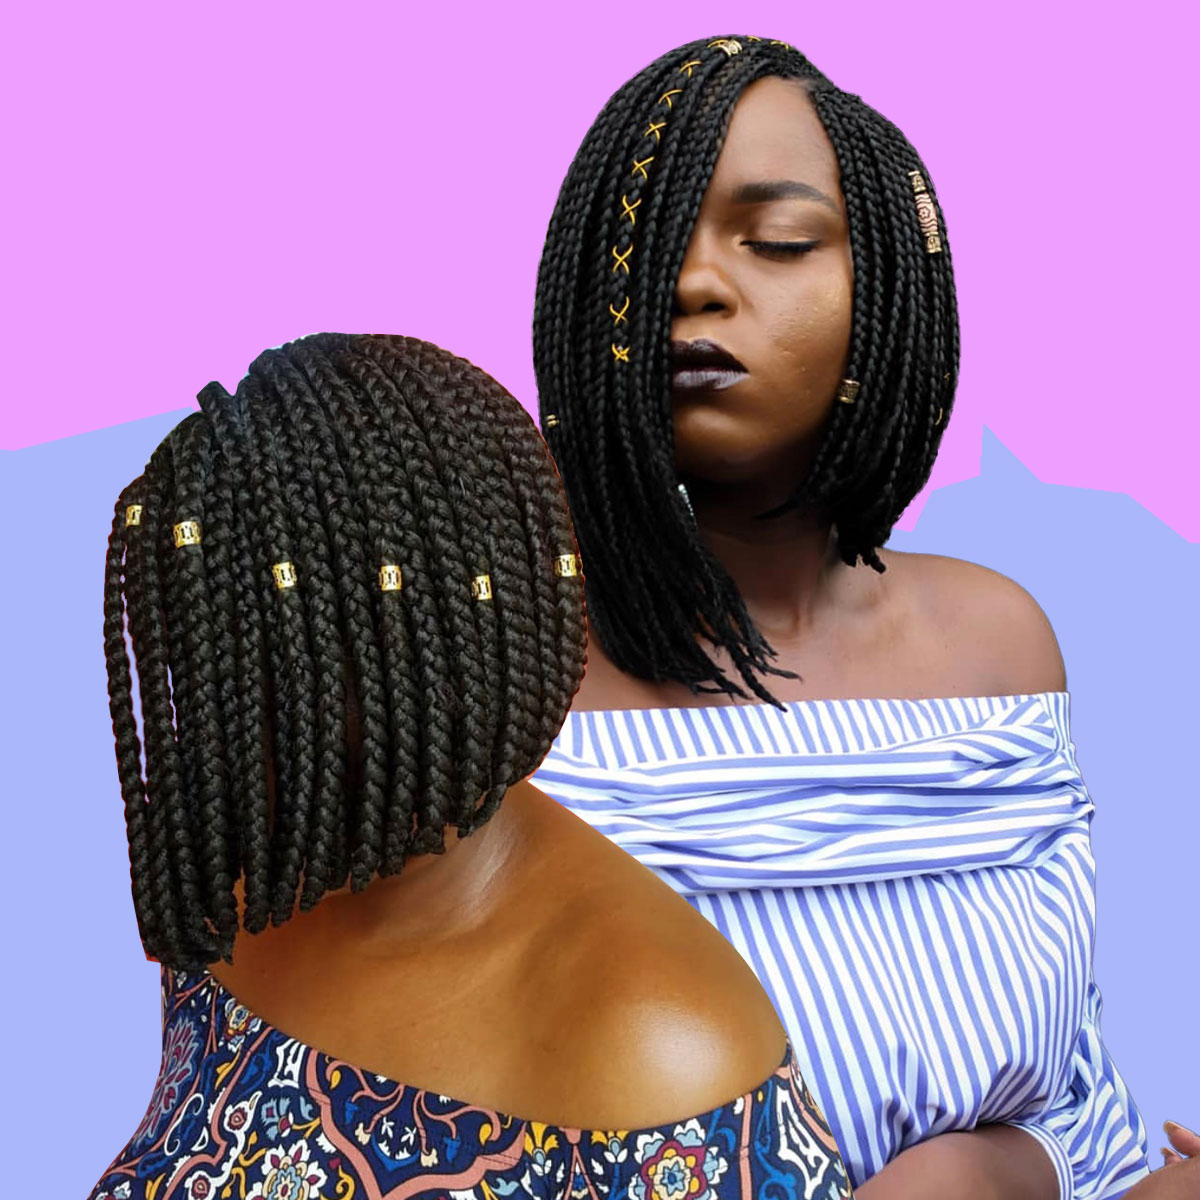 Well Known Side Parted Braided Bob Hairstyles With 17 Beautiful Braided Bobs From Instagram You Need To Give A Try (View 20 of 20)